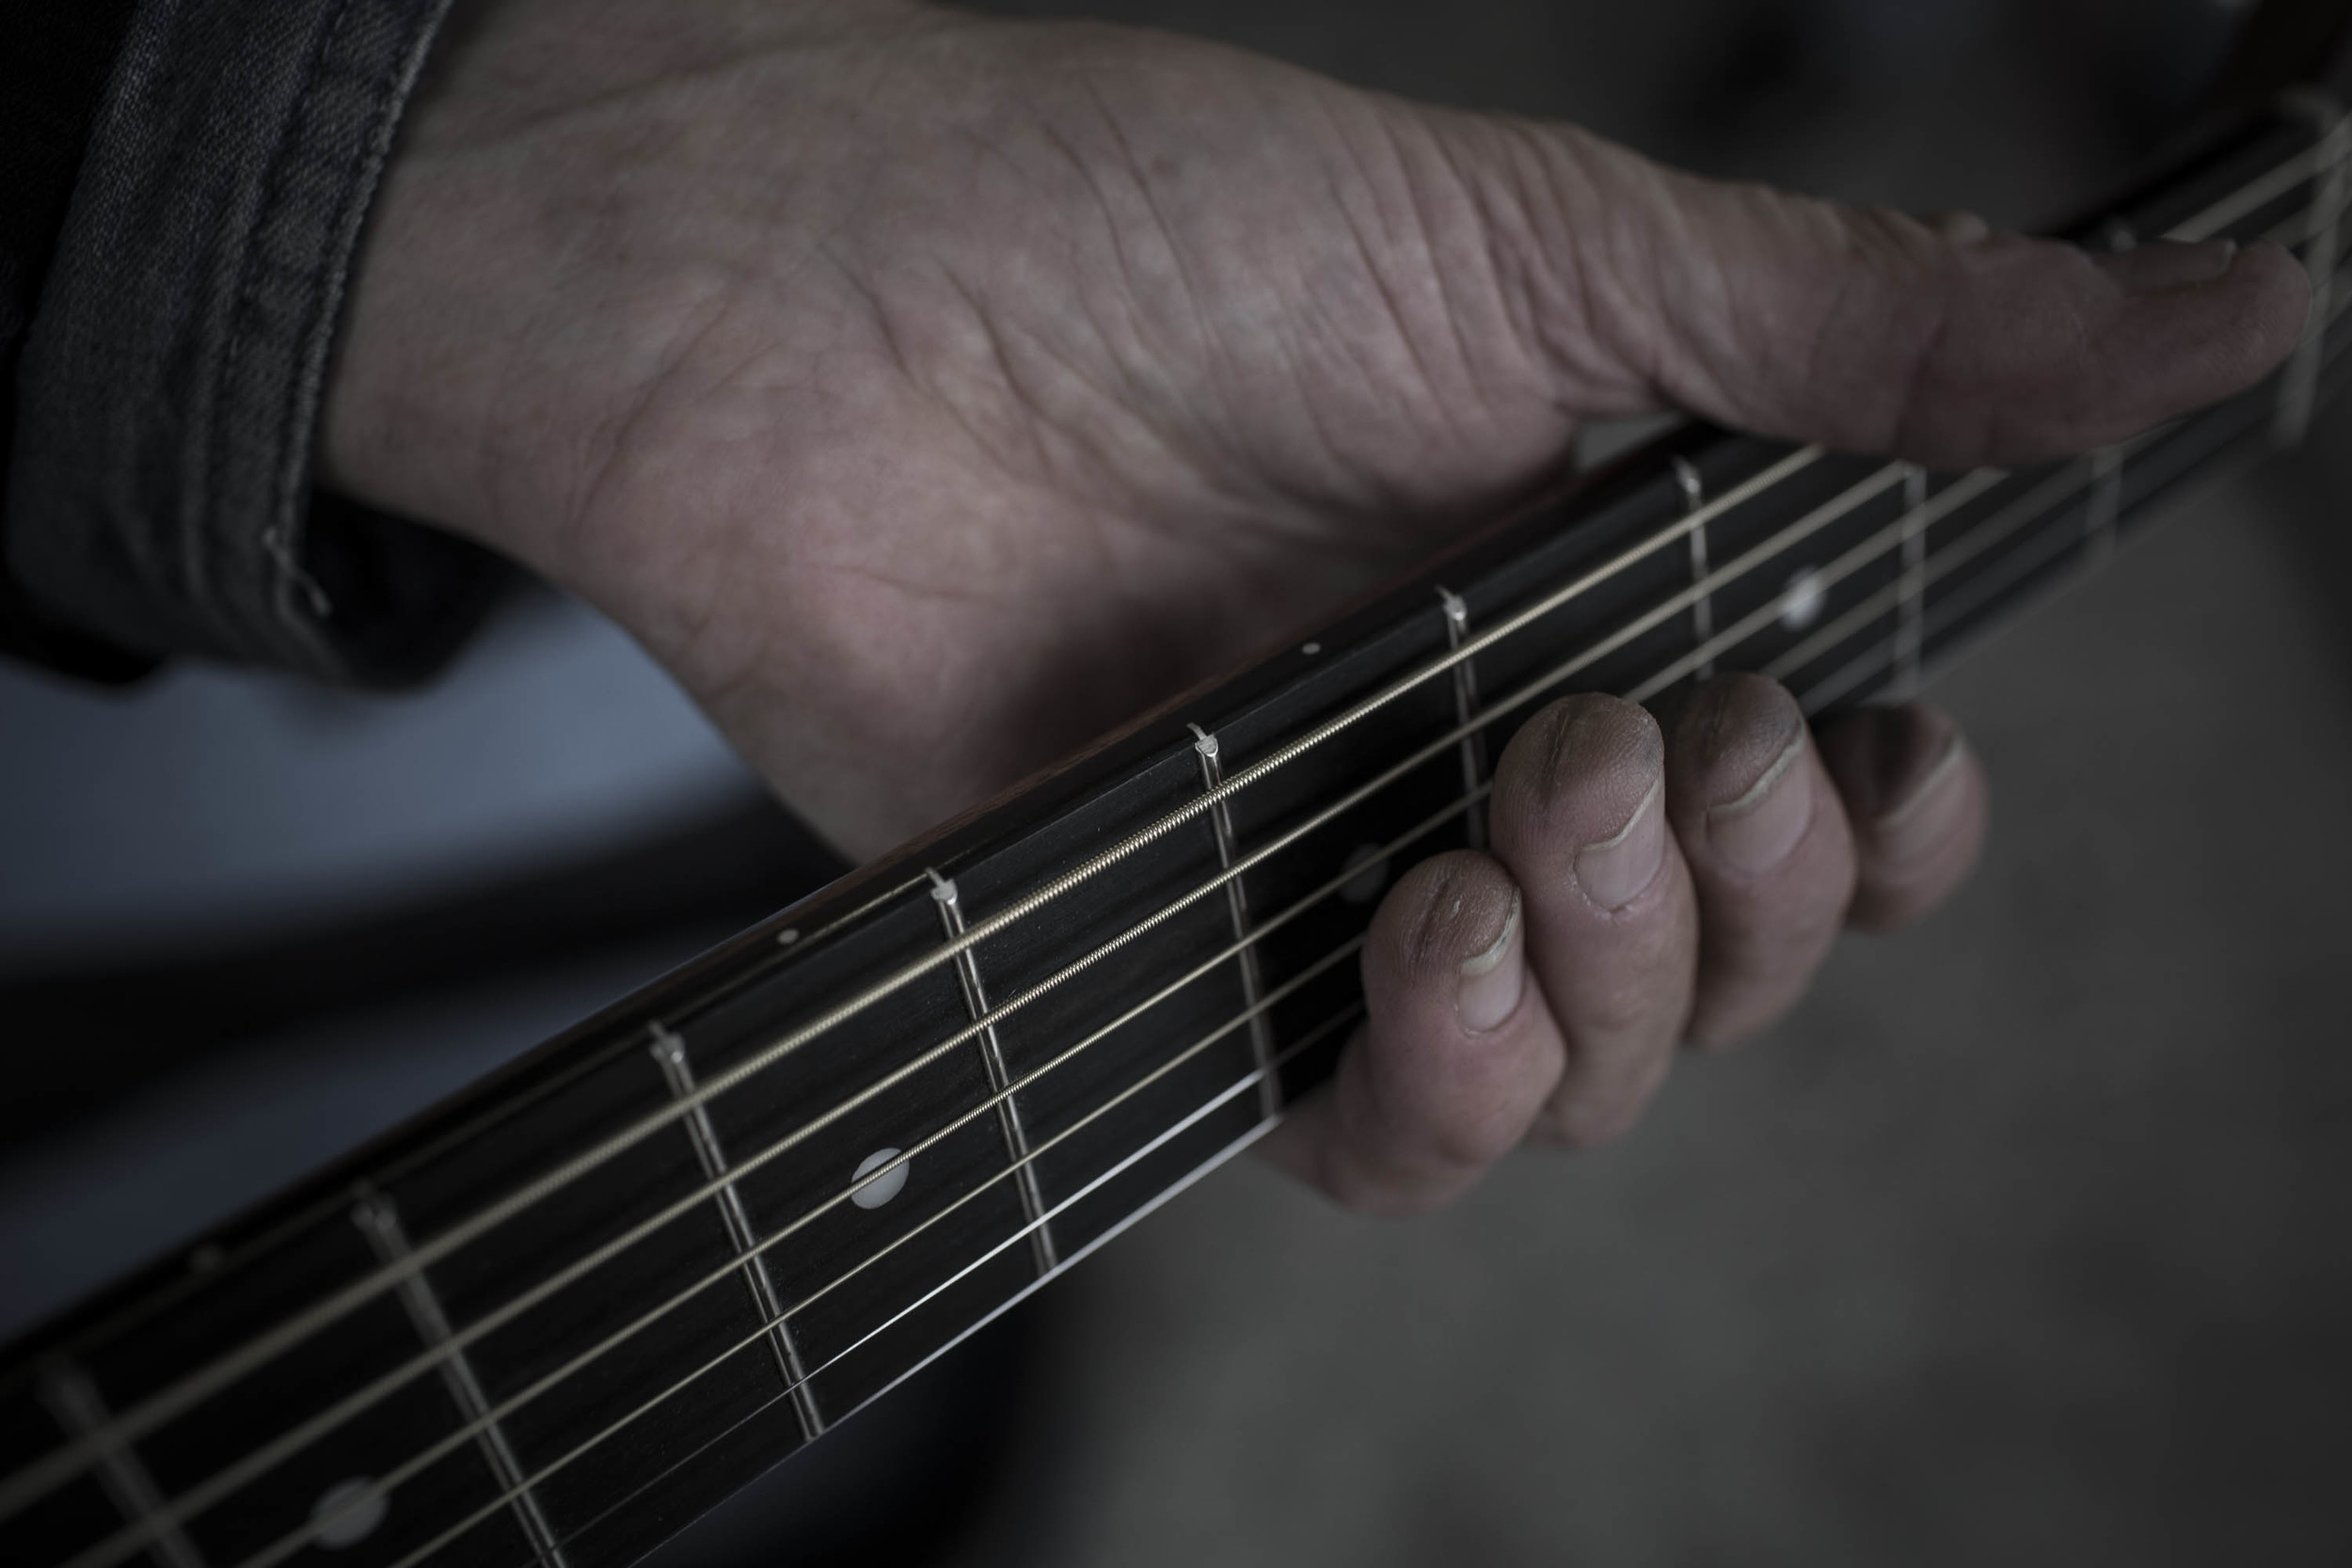 Over the decades, Doug Seegers has developed thick guitar-string calluses on his fingertips.